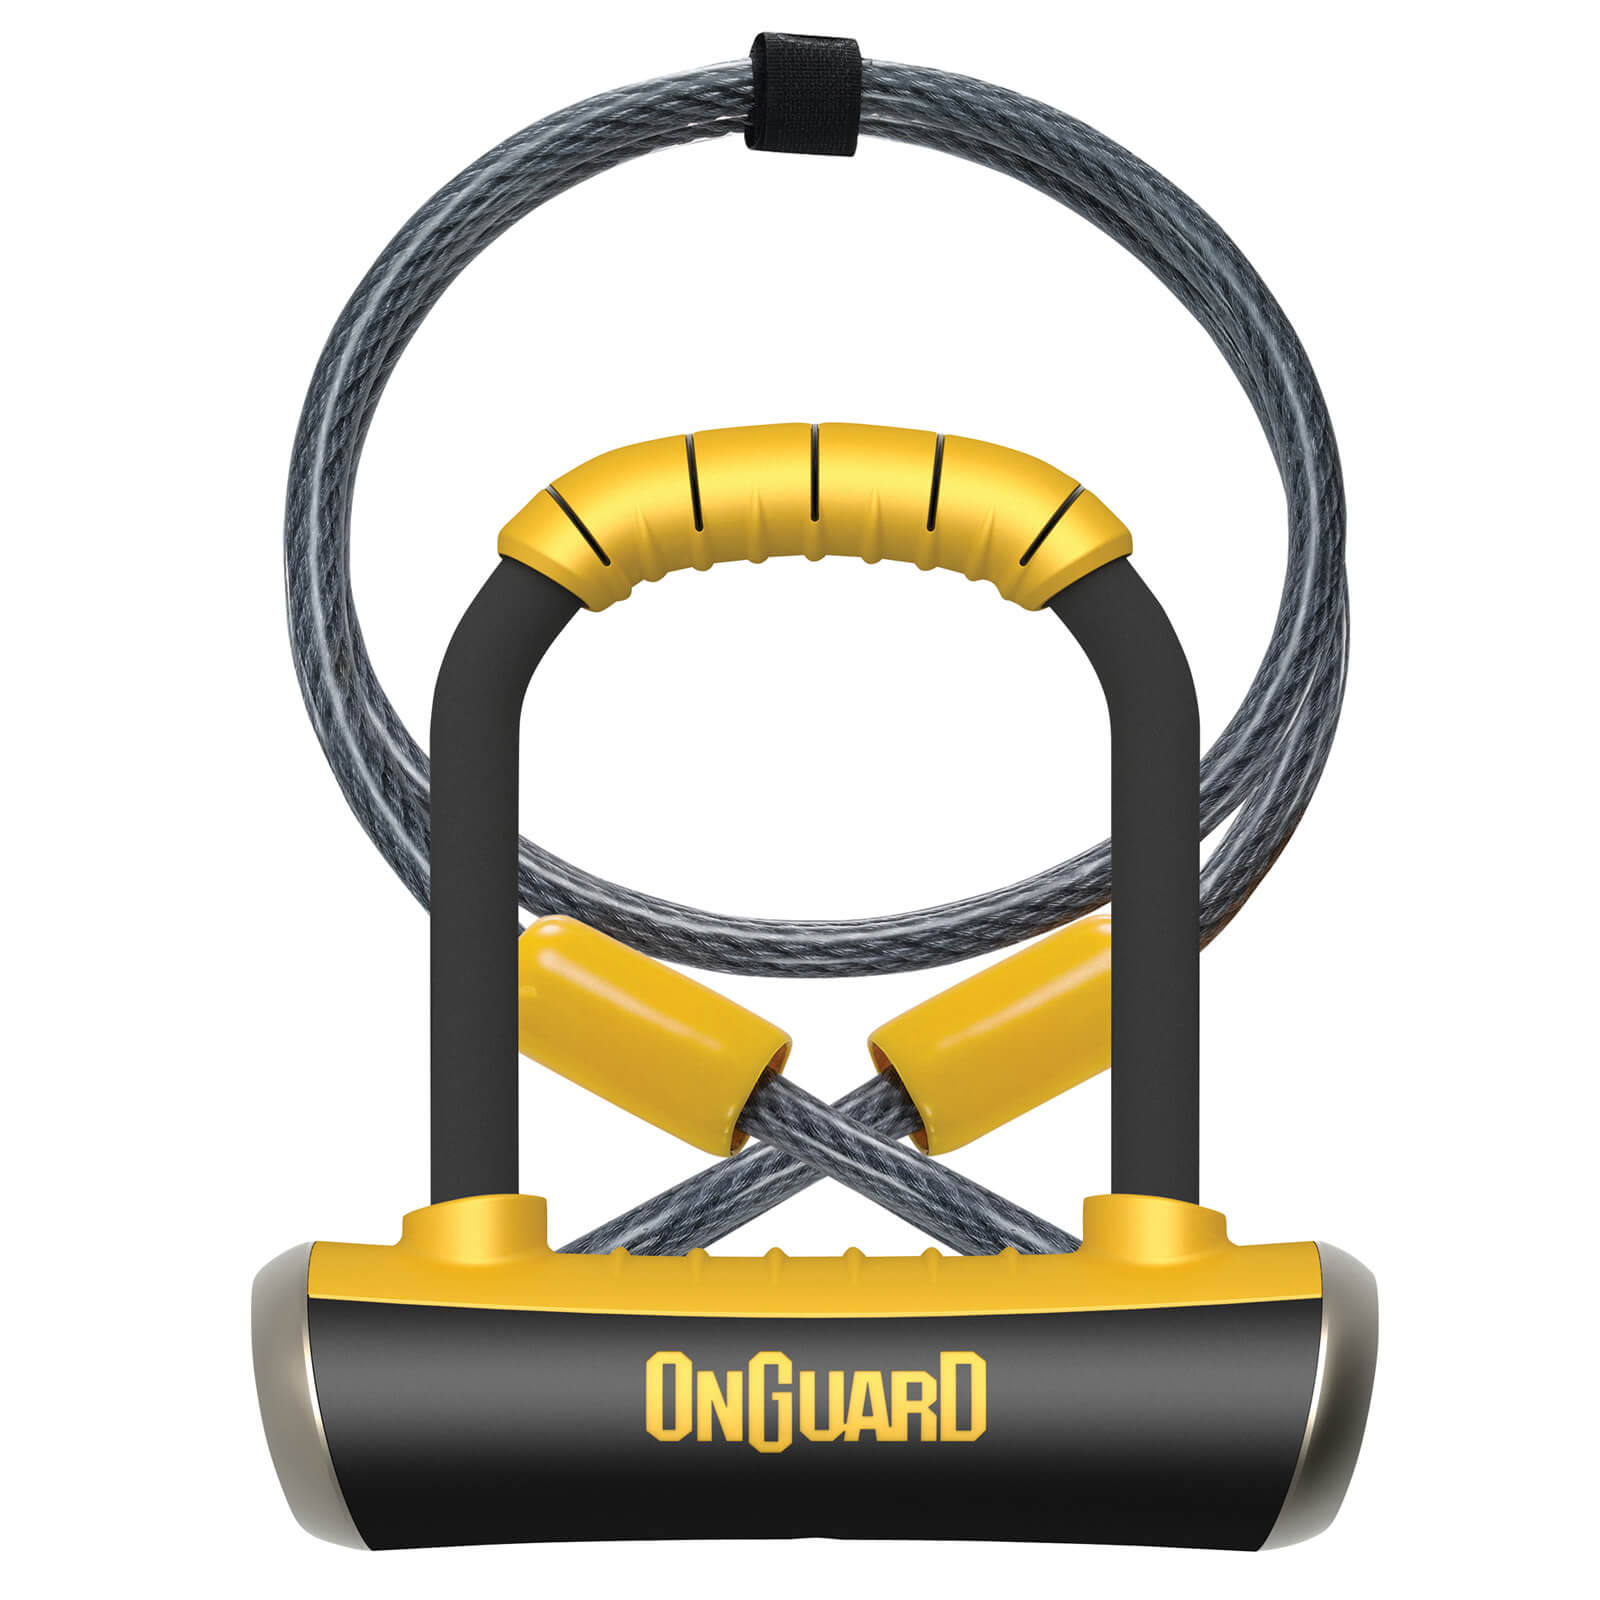 OnGuard Pitbull Mini Standard Shackle U-Lock/Cable - 90mm x 140mm x 14mm